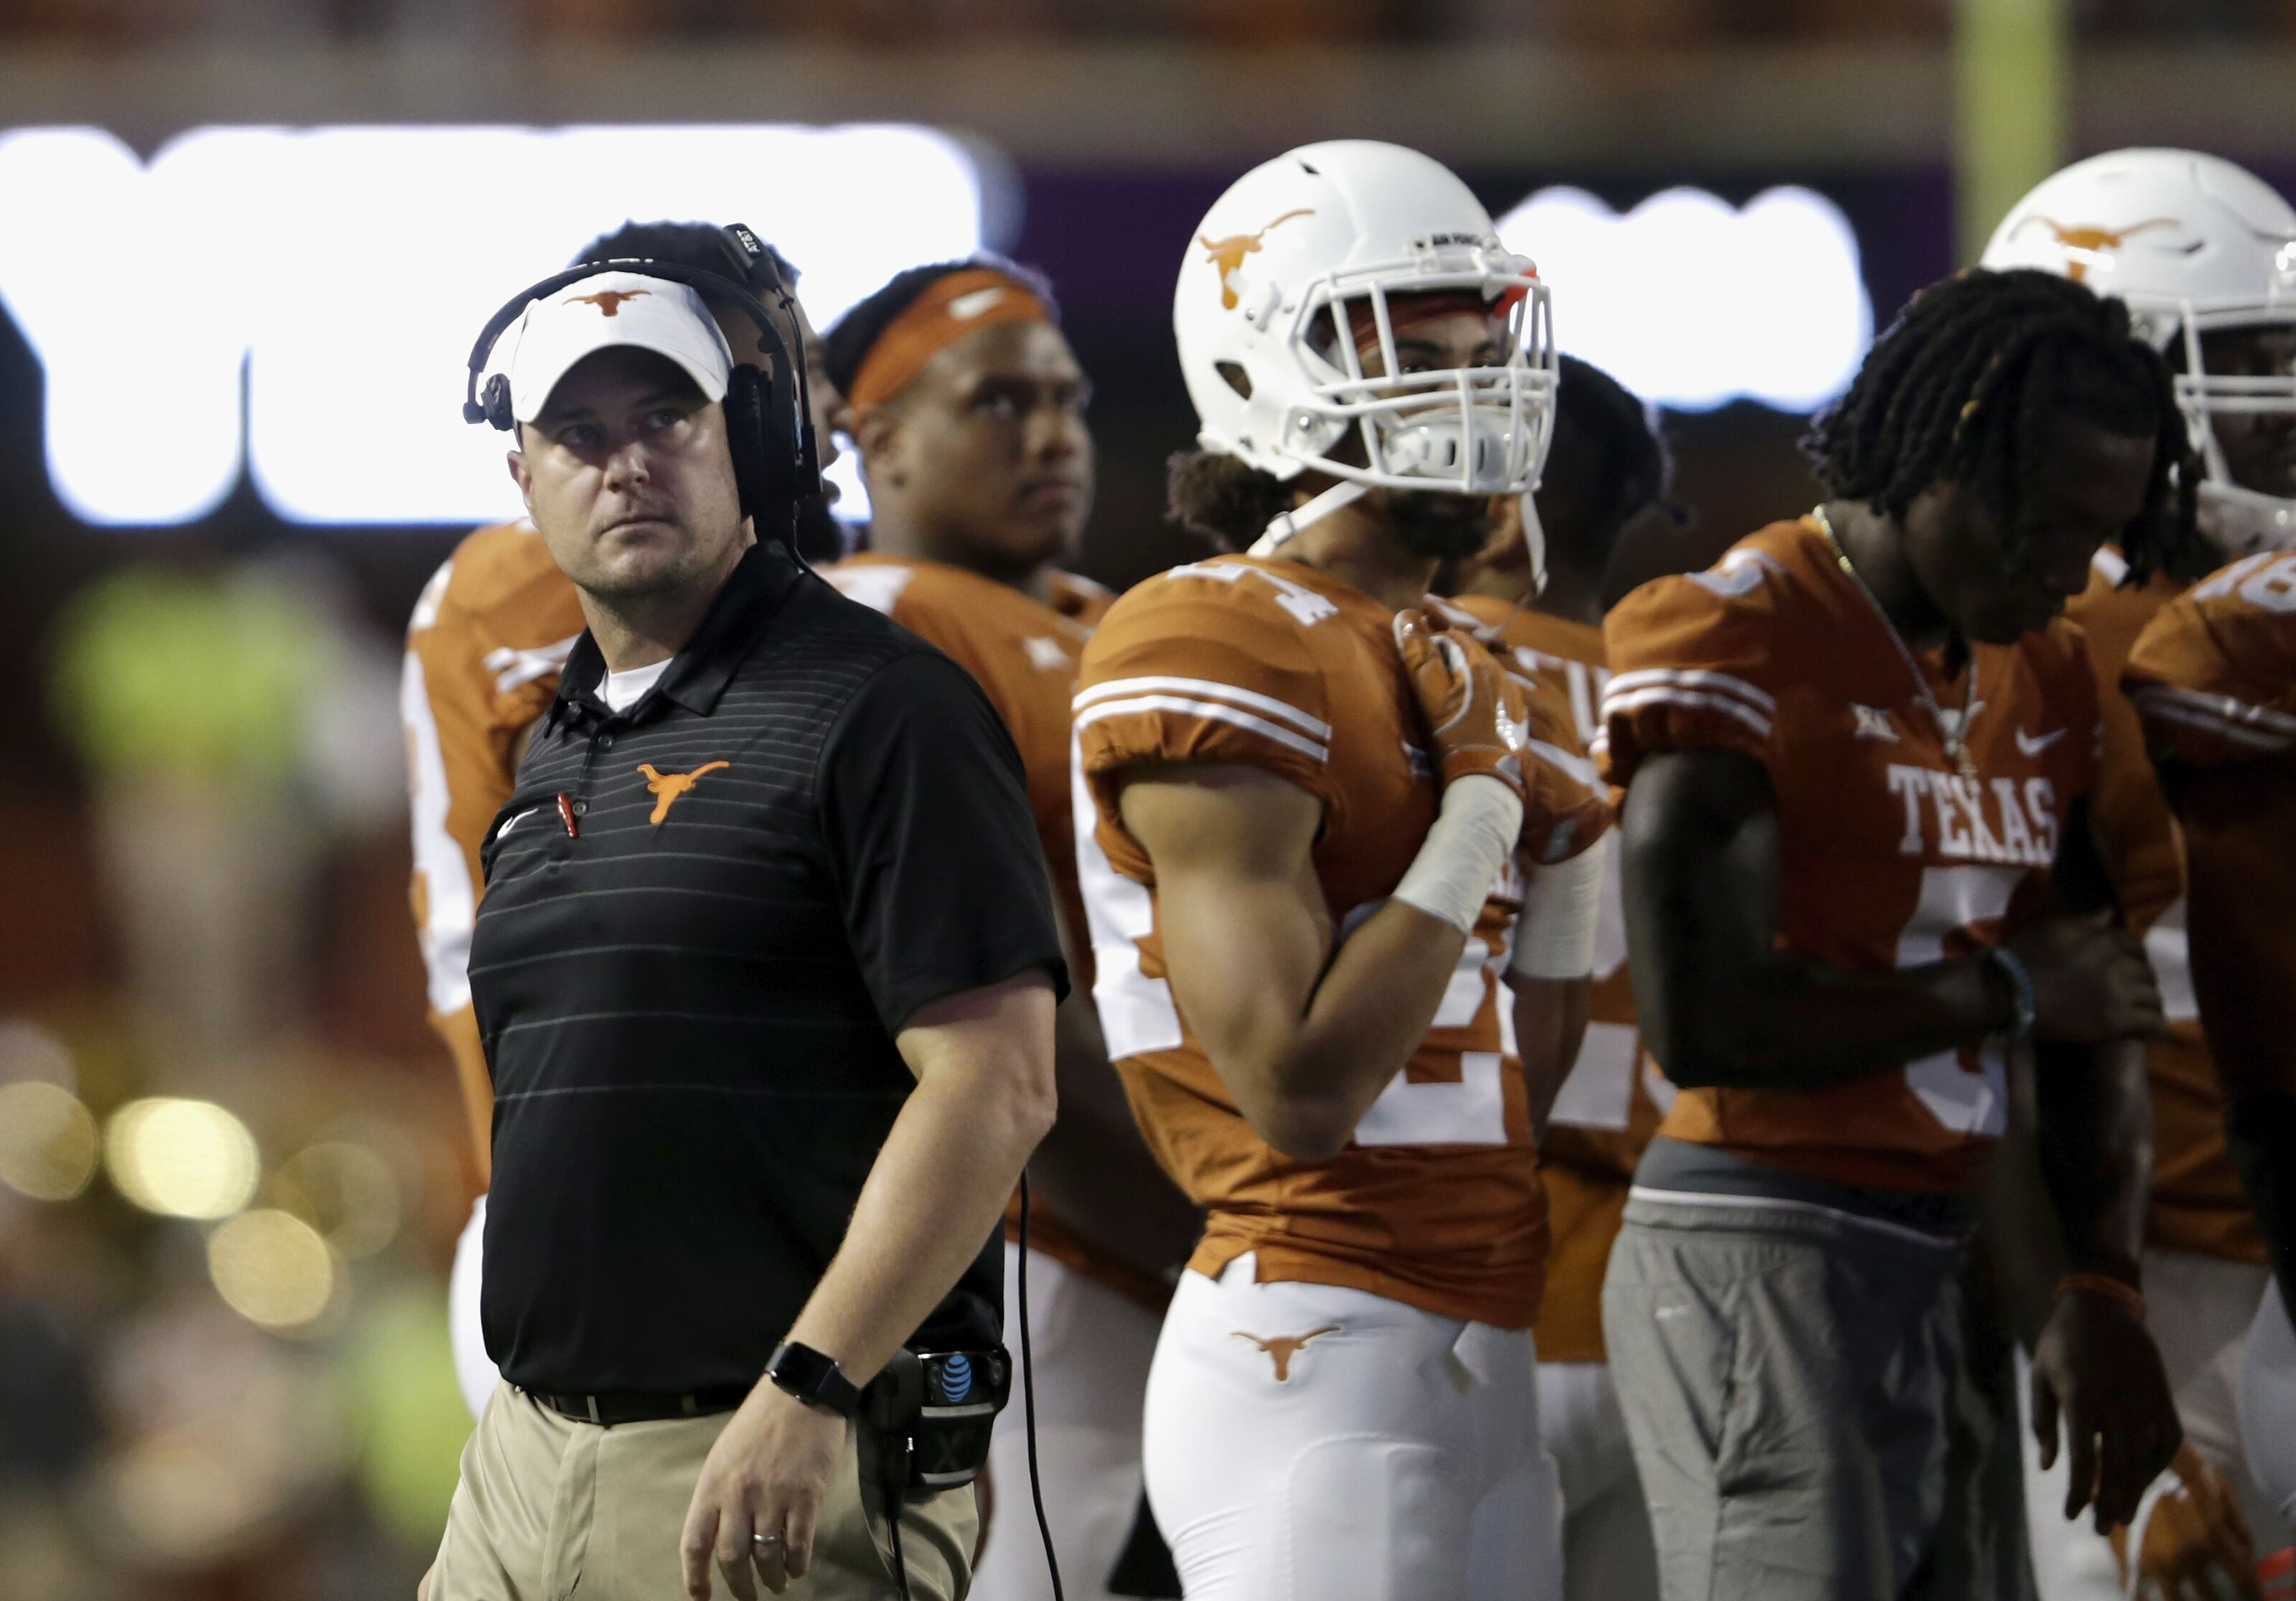 2017 Texas Basketball Recruiting Longhorn Class Ranked 4: Texas Football Recruiting: 3 Things To Know About 2019 OT